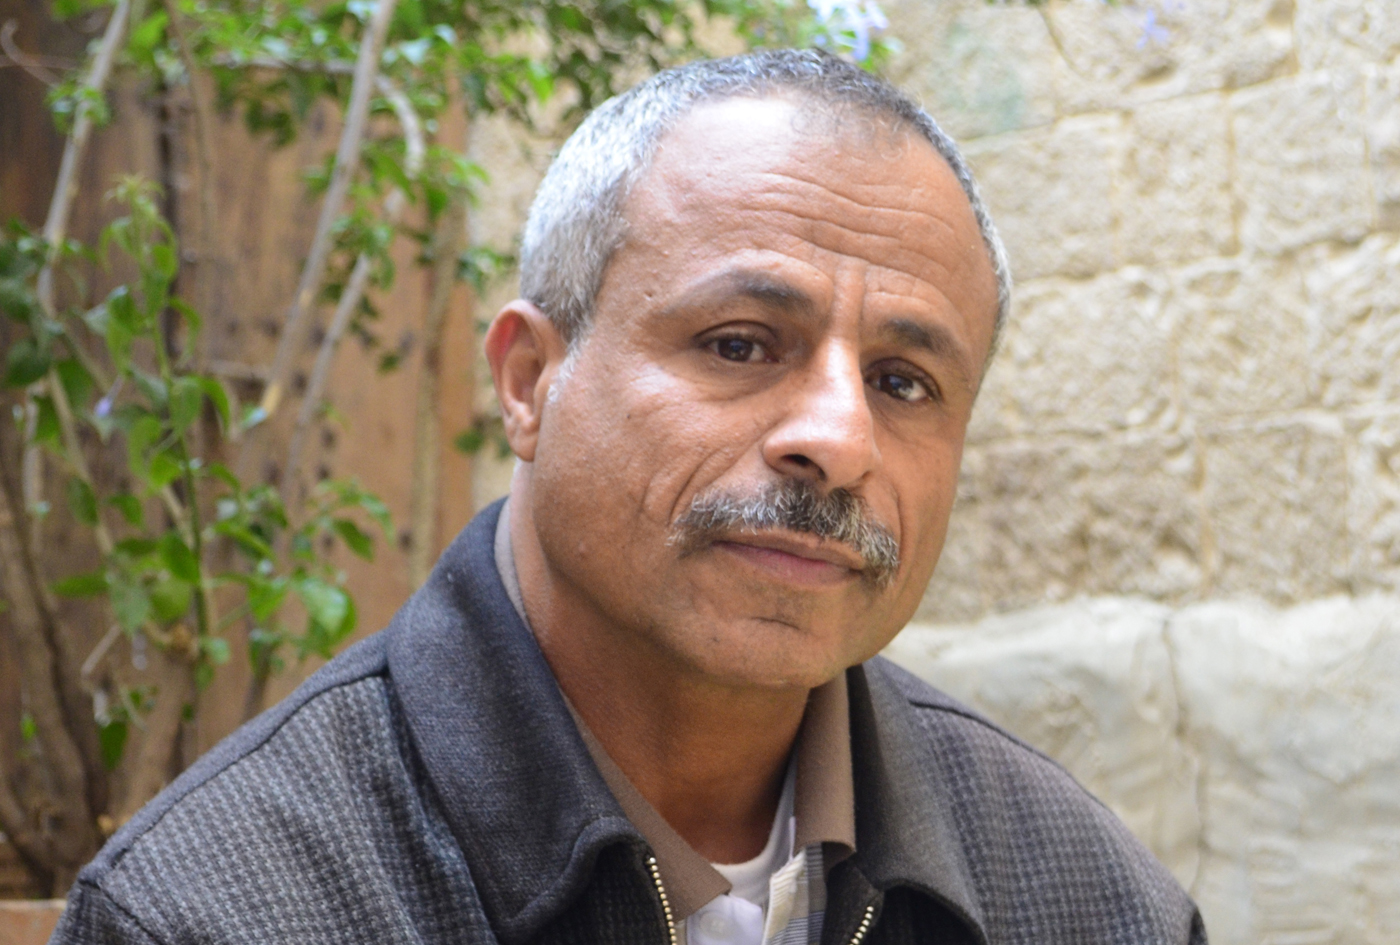 Adel Aklin – teacher, Yemen